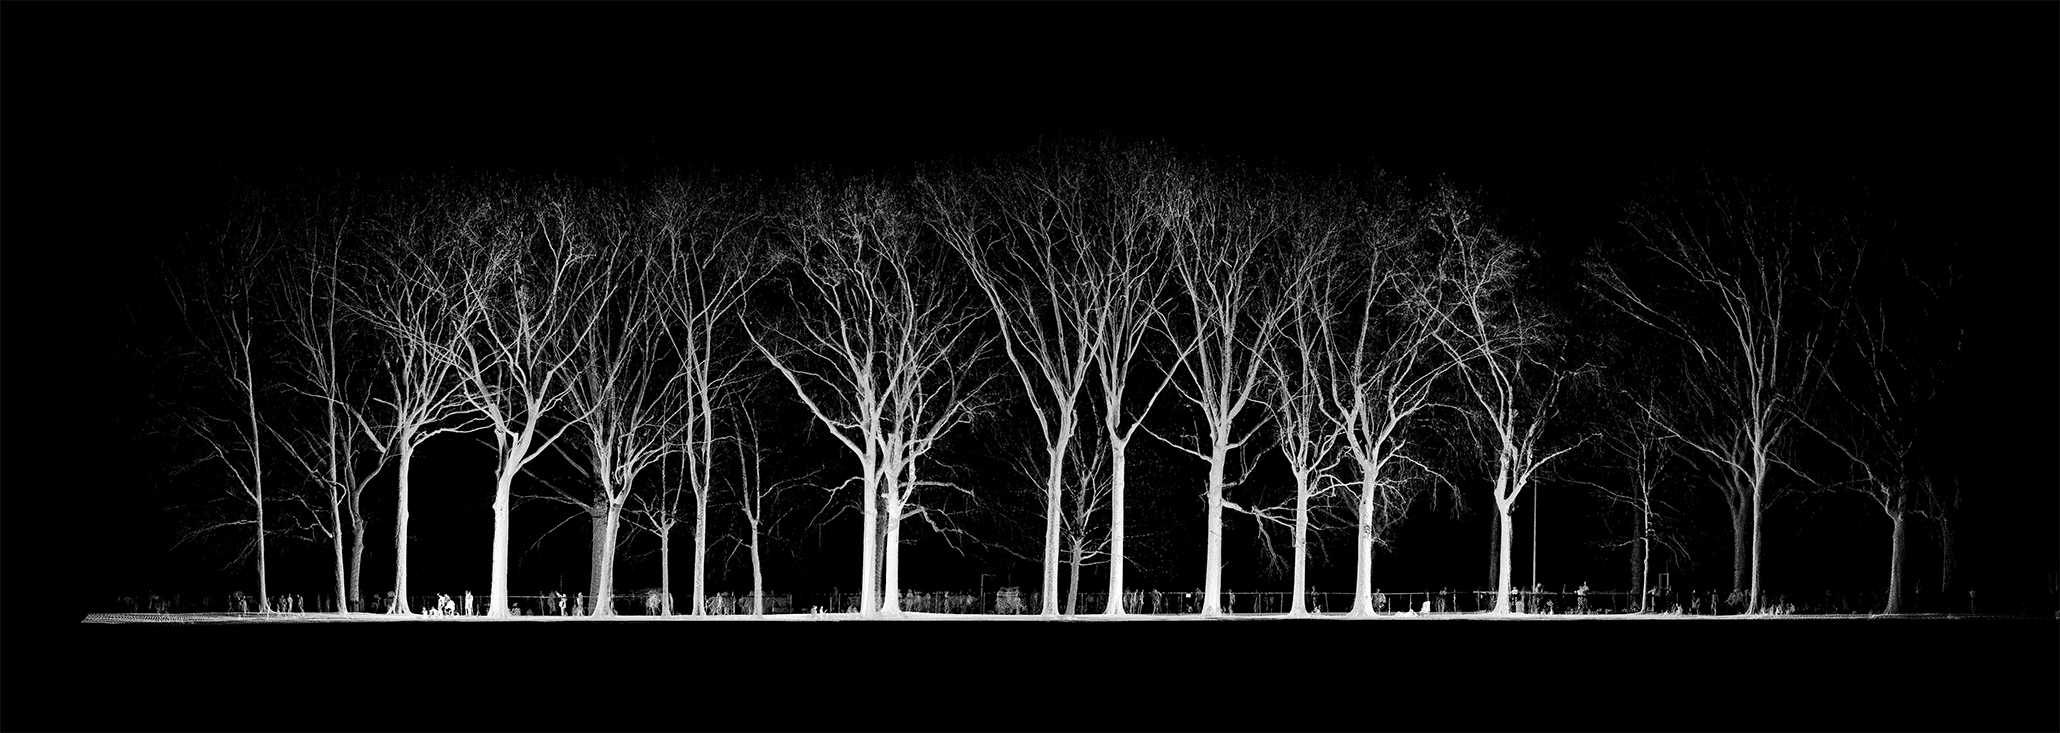 mynd-workshop-central-park-sheep-meadow-trees-13-3D-laser-scanning-point-cloud-new-york.jpg